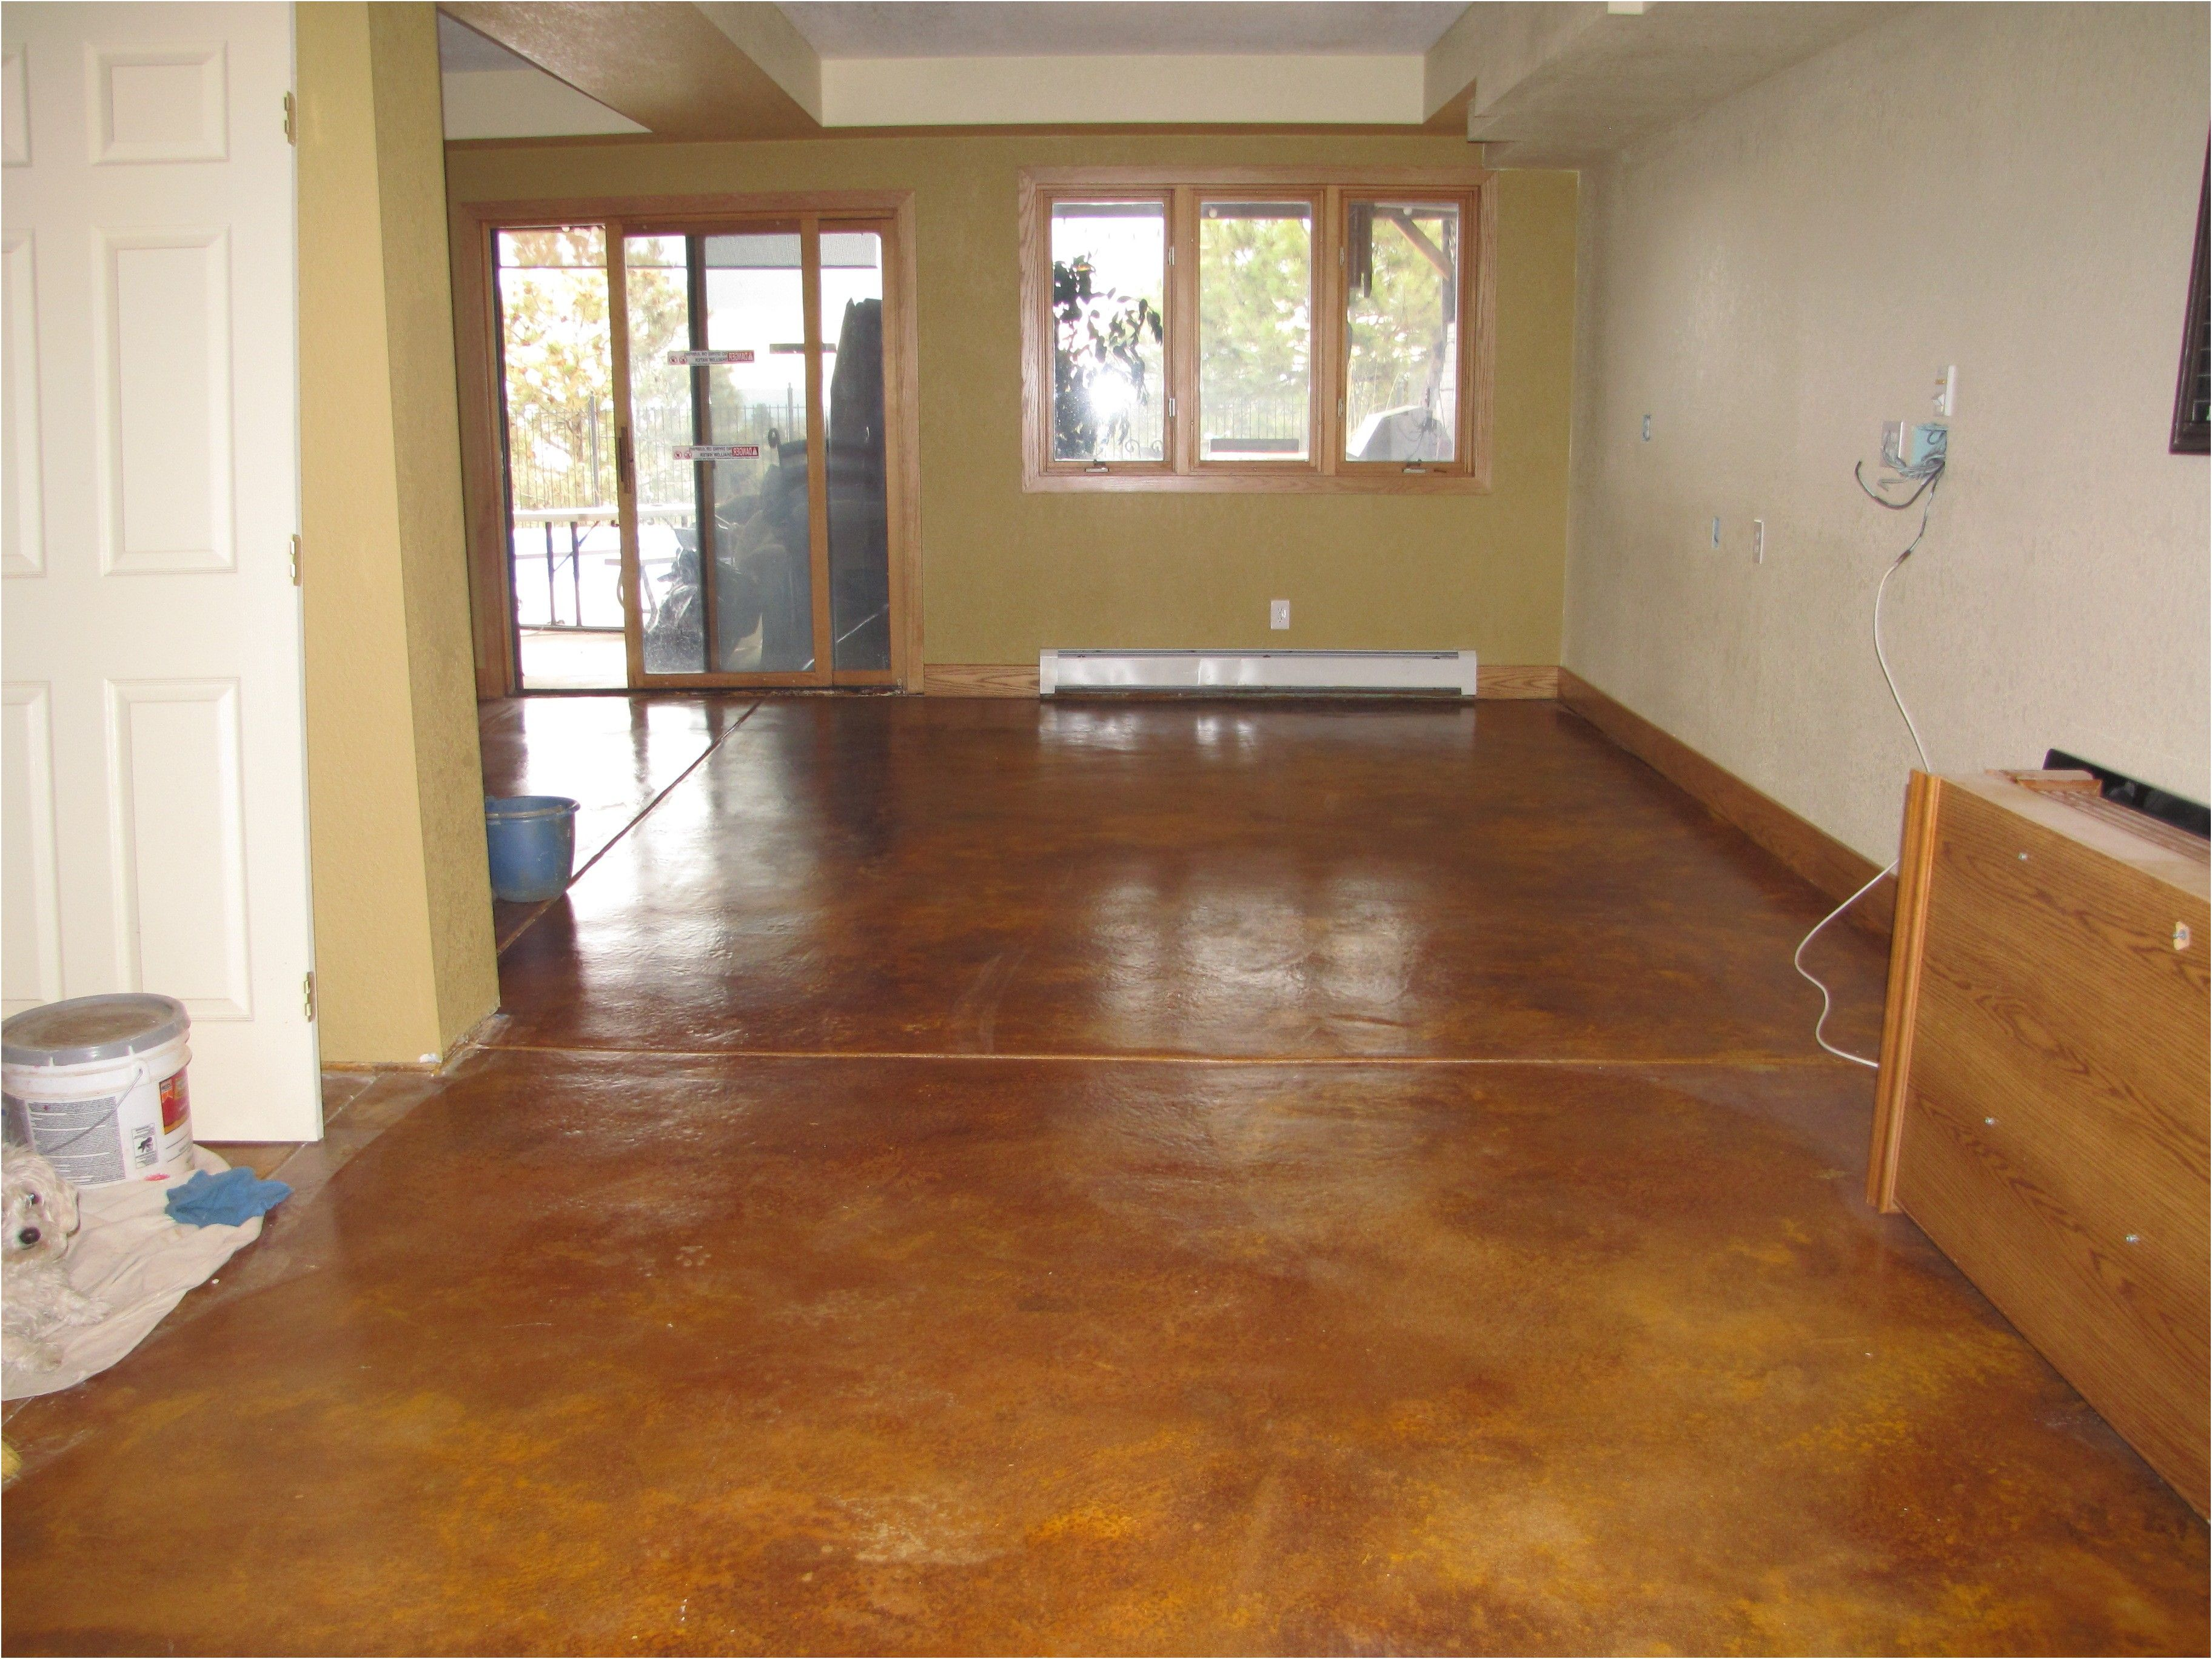 how to paint the basement floor using basement floor paint from How